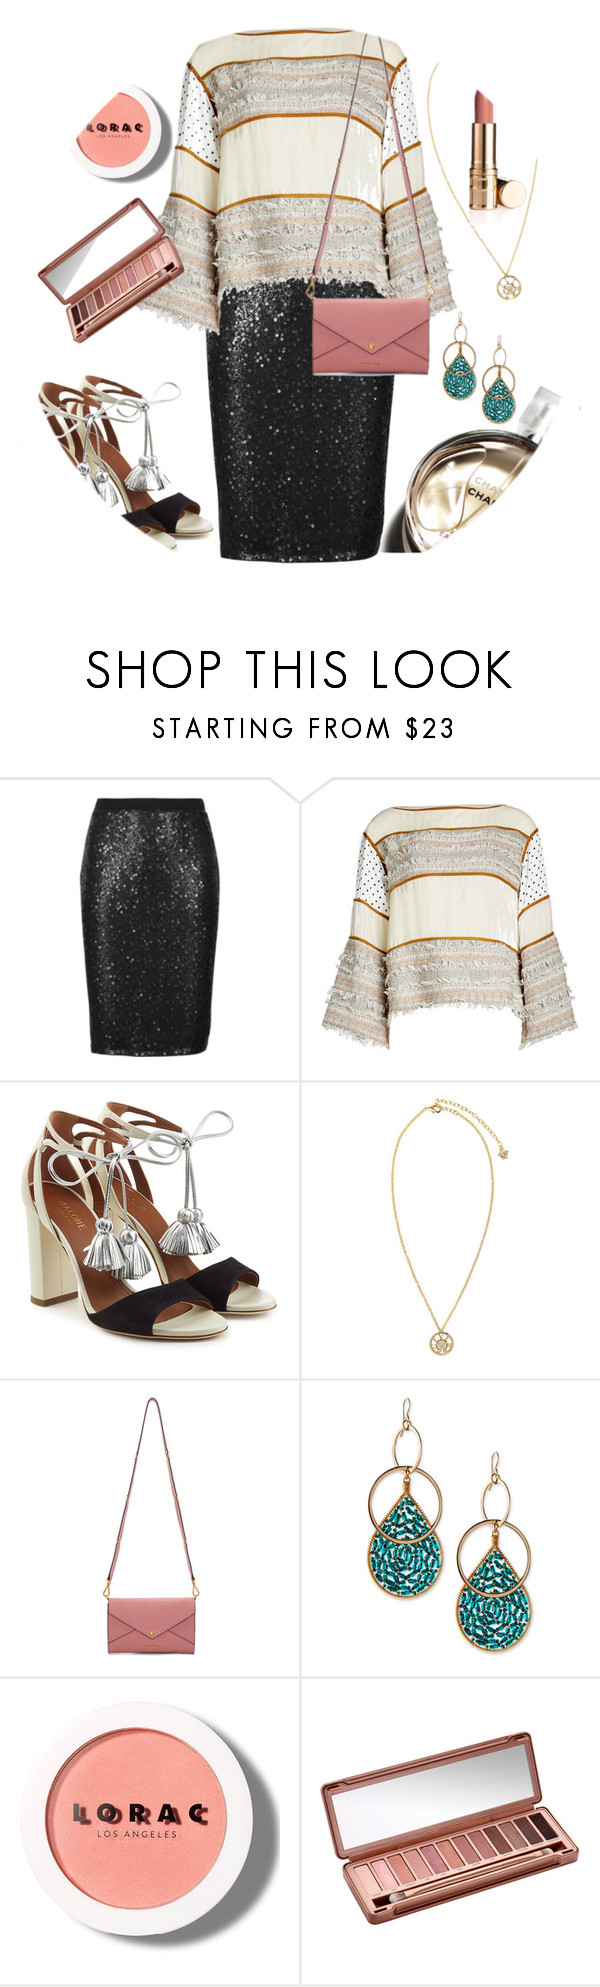 """""""#pencilskirt"""" by mimi-varte ❤ liked on Polyvore featuring M&S Collection, See by Chloé, Malone Souliers, Versace, Miu Miu, Chanel, Devon Leigh, LORAC and Urban Decay"""